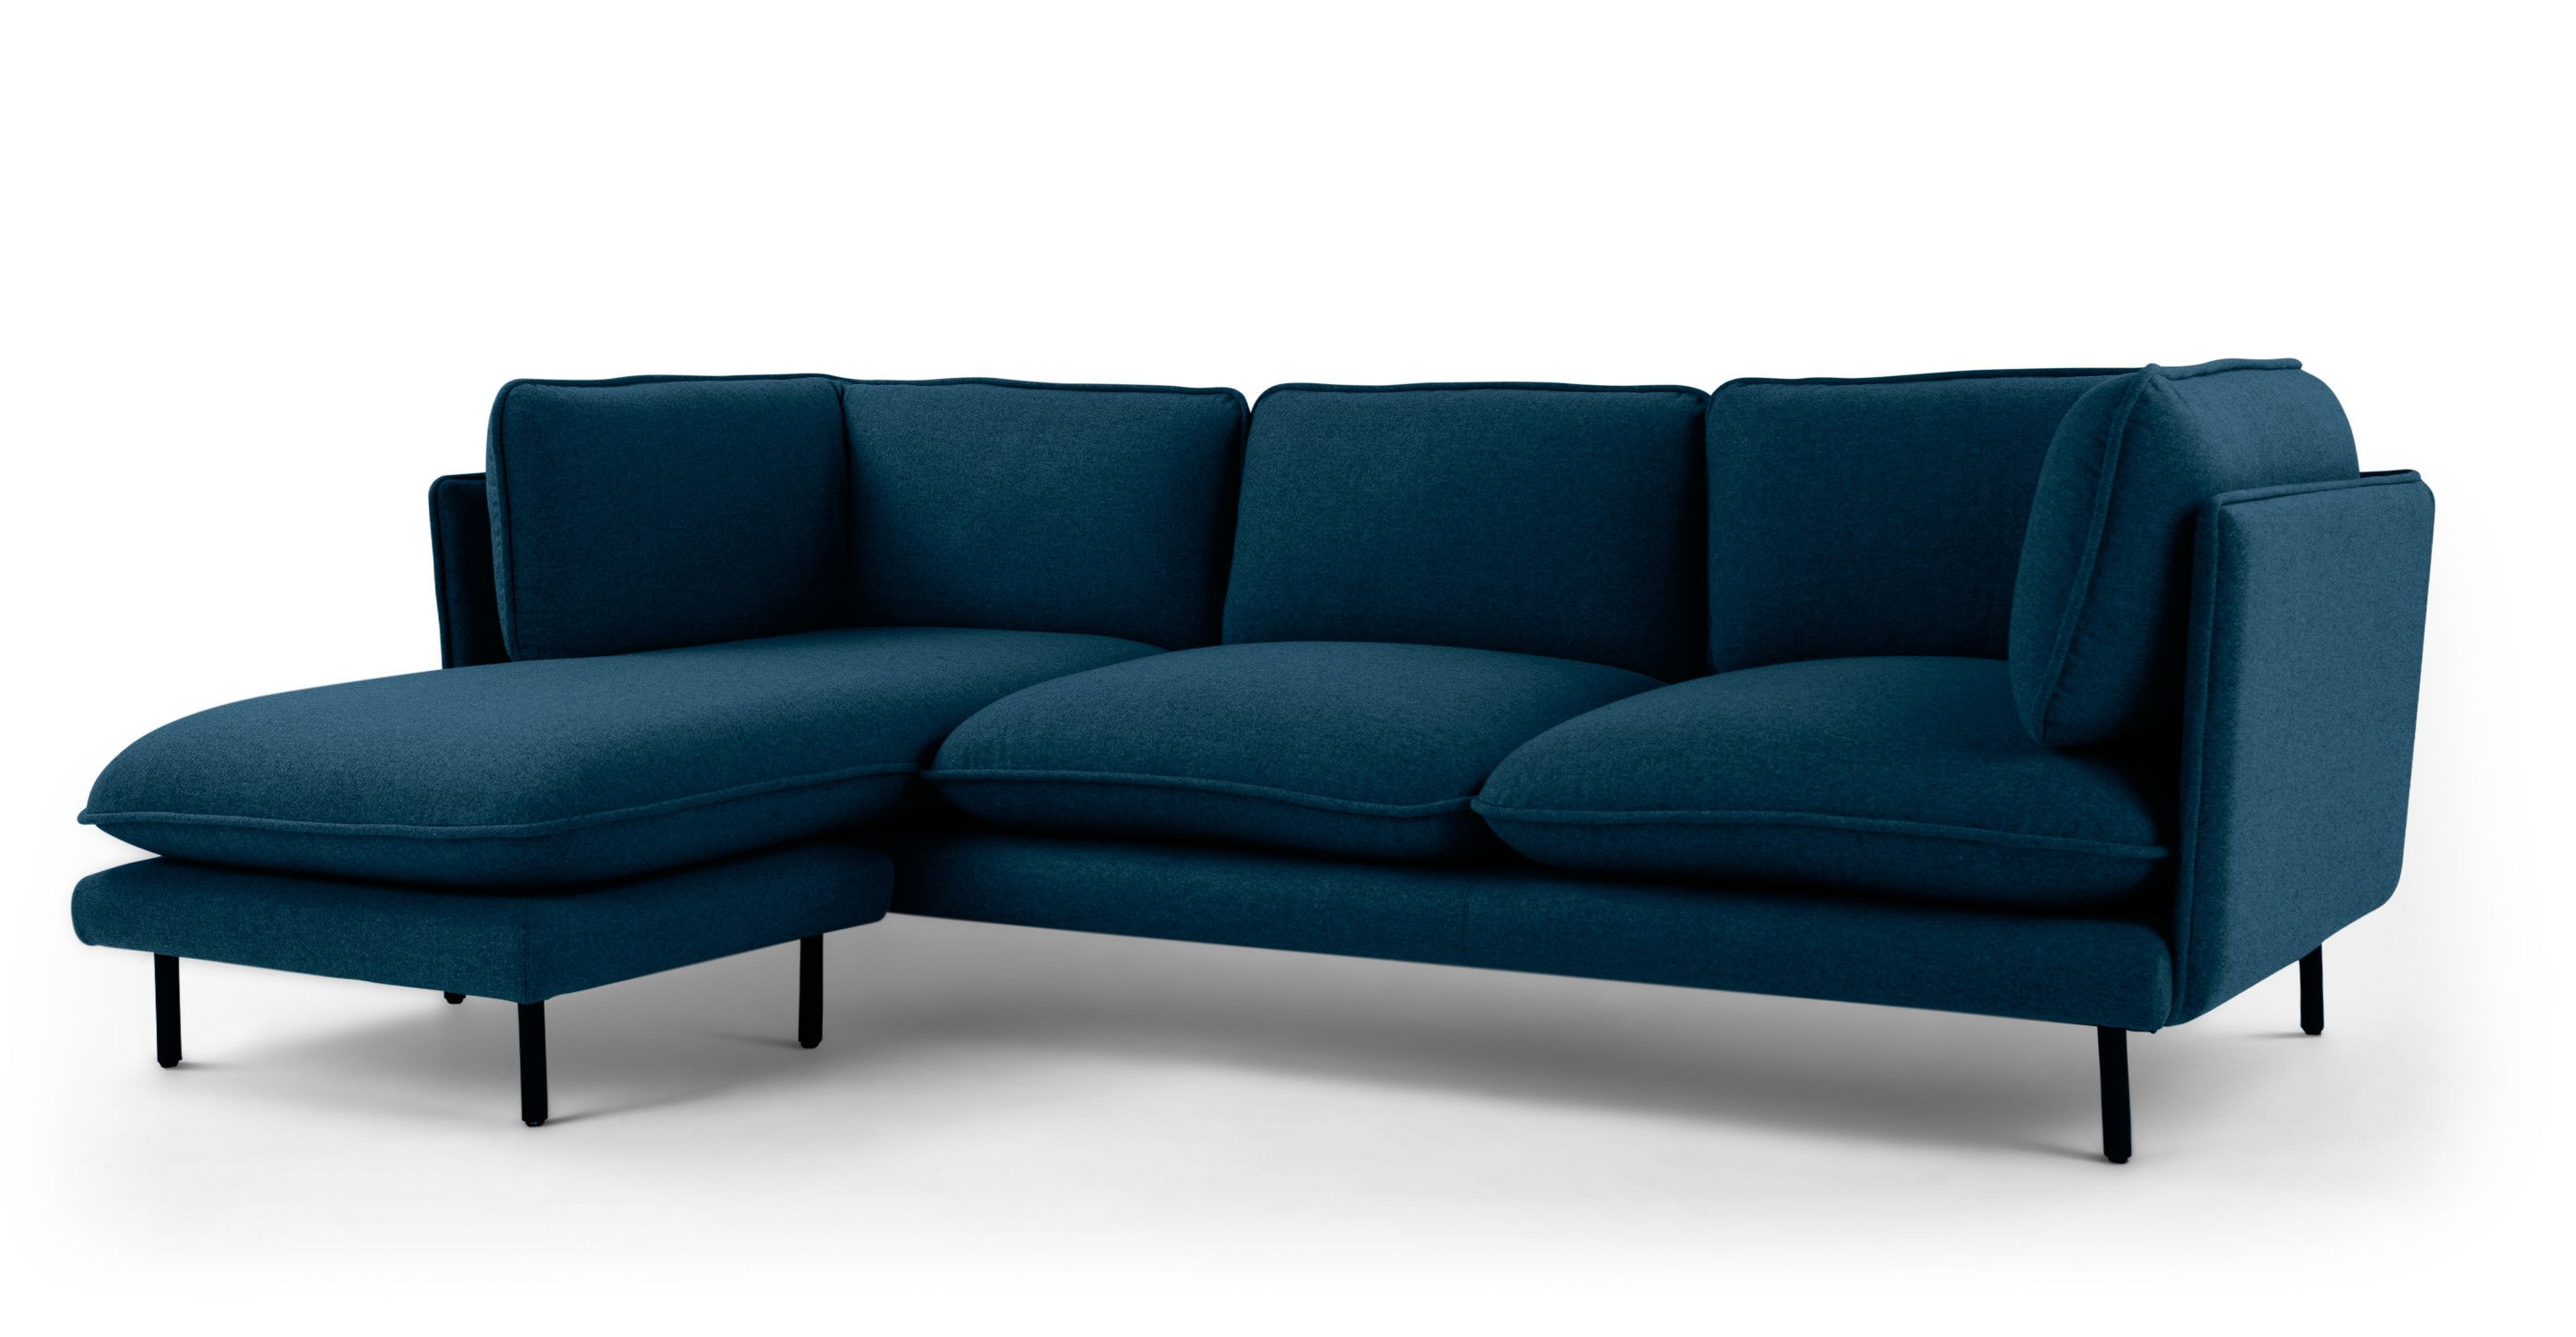 Sofa Petrol Wes Corner Chaise, Petrol Teal | Made.com | Corner Sofa, Living Room Corner, Teal Sofa